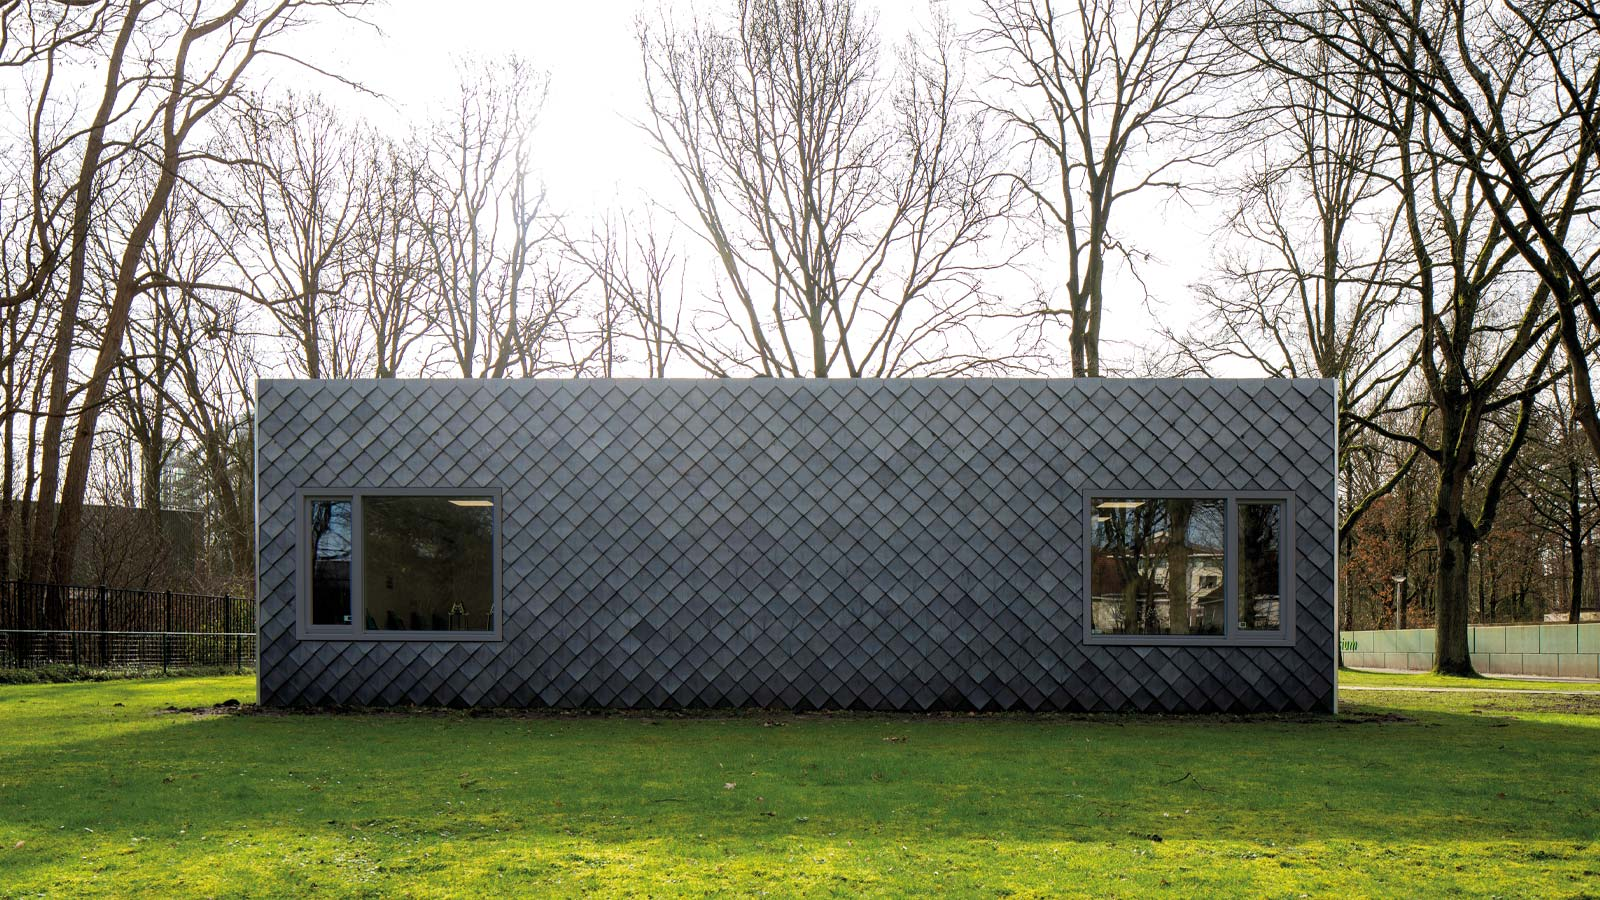 Shingles made of recycled materials on a pavilion in the Netherlands